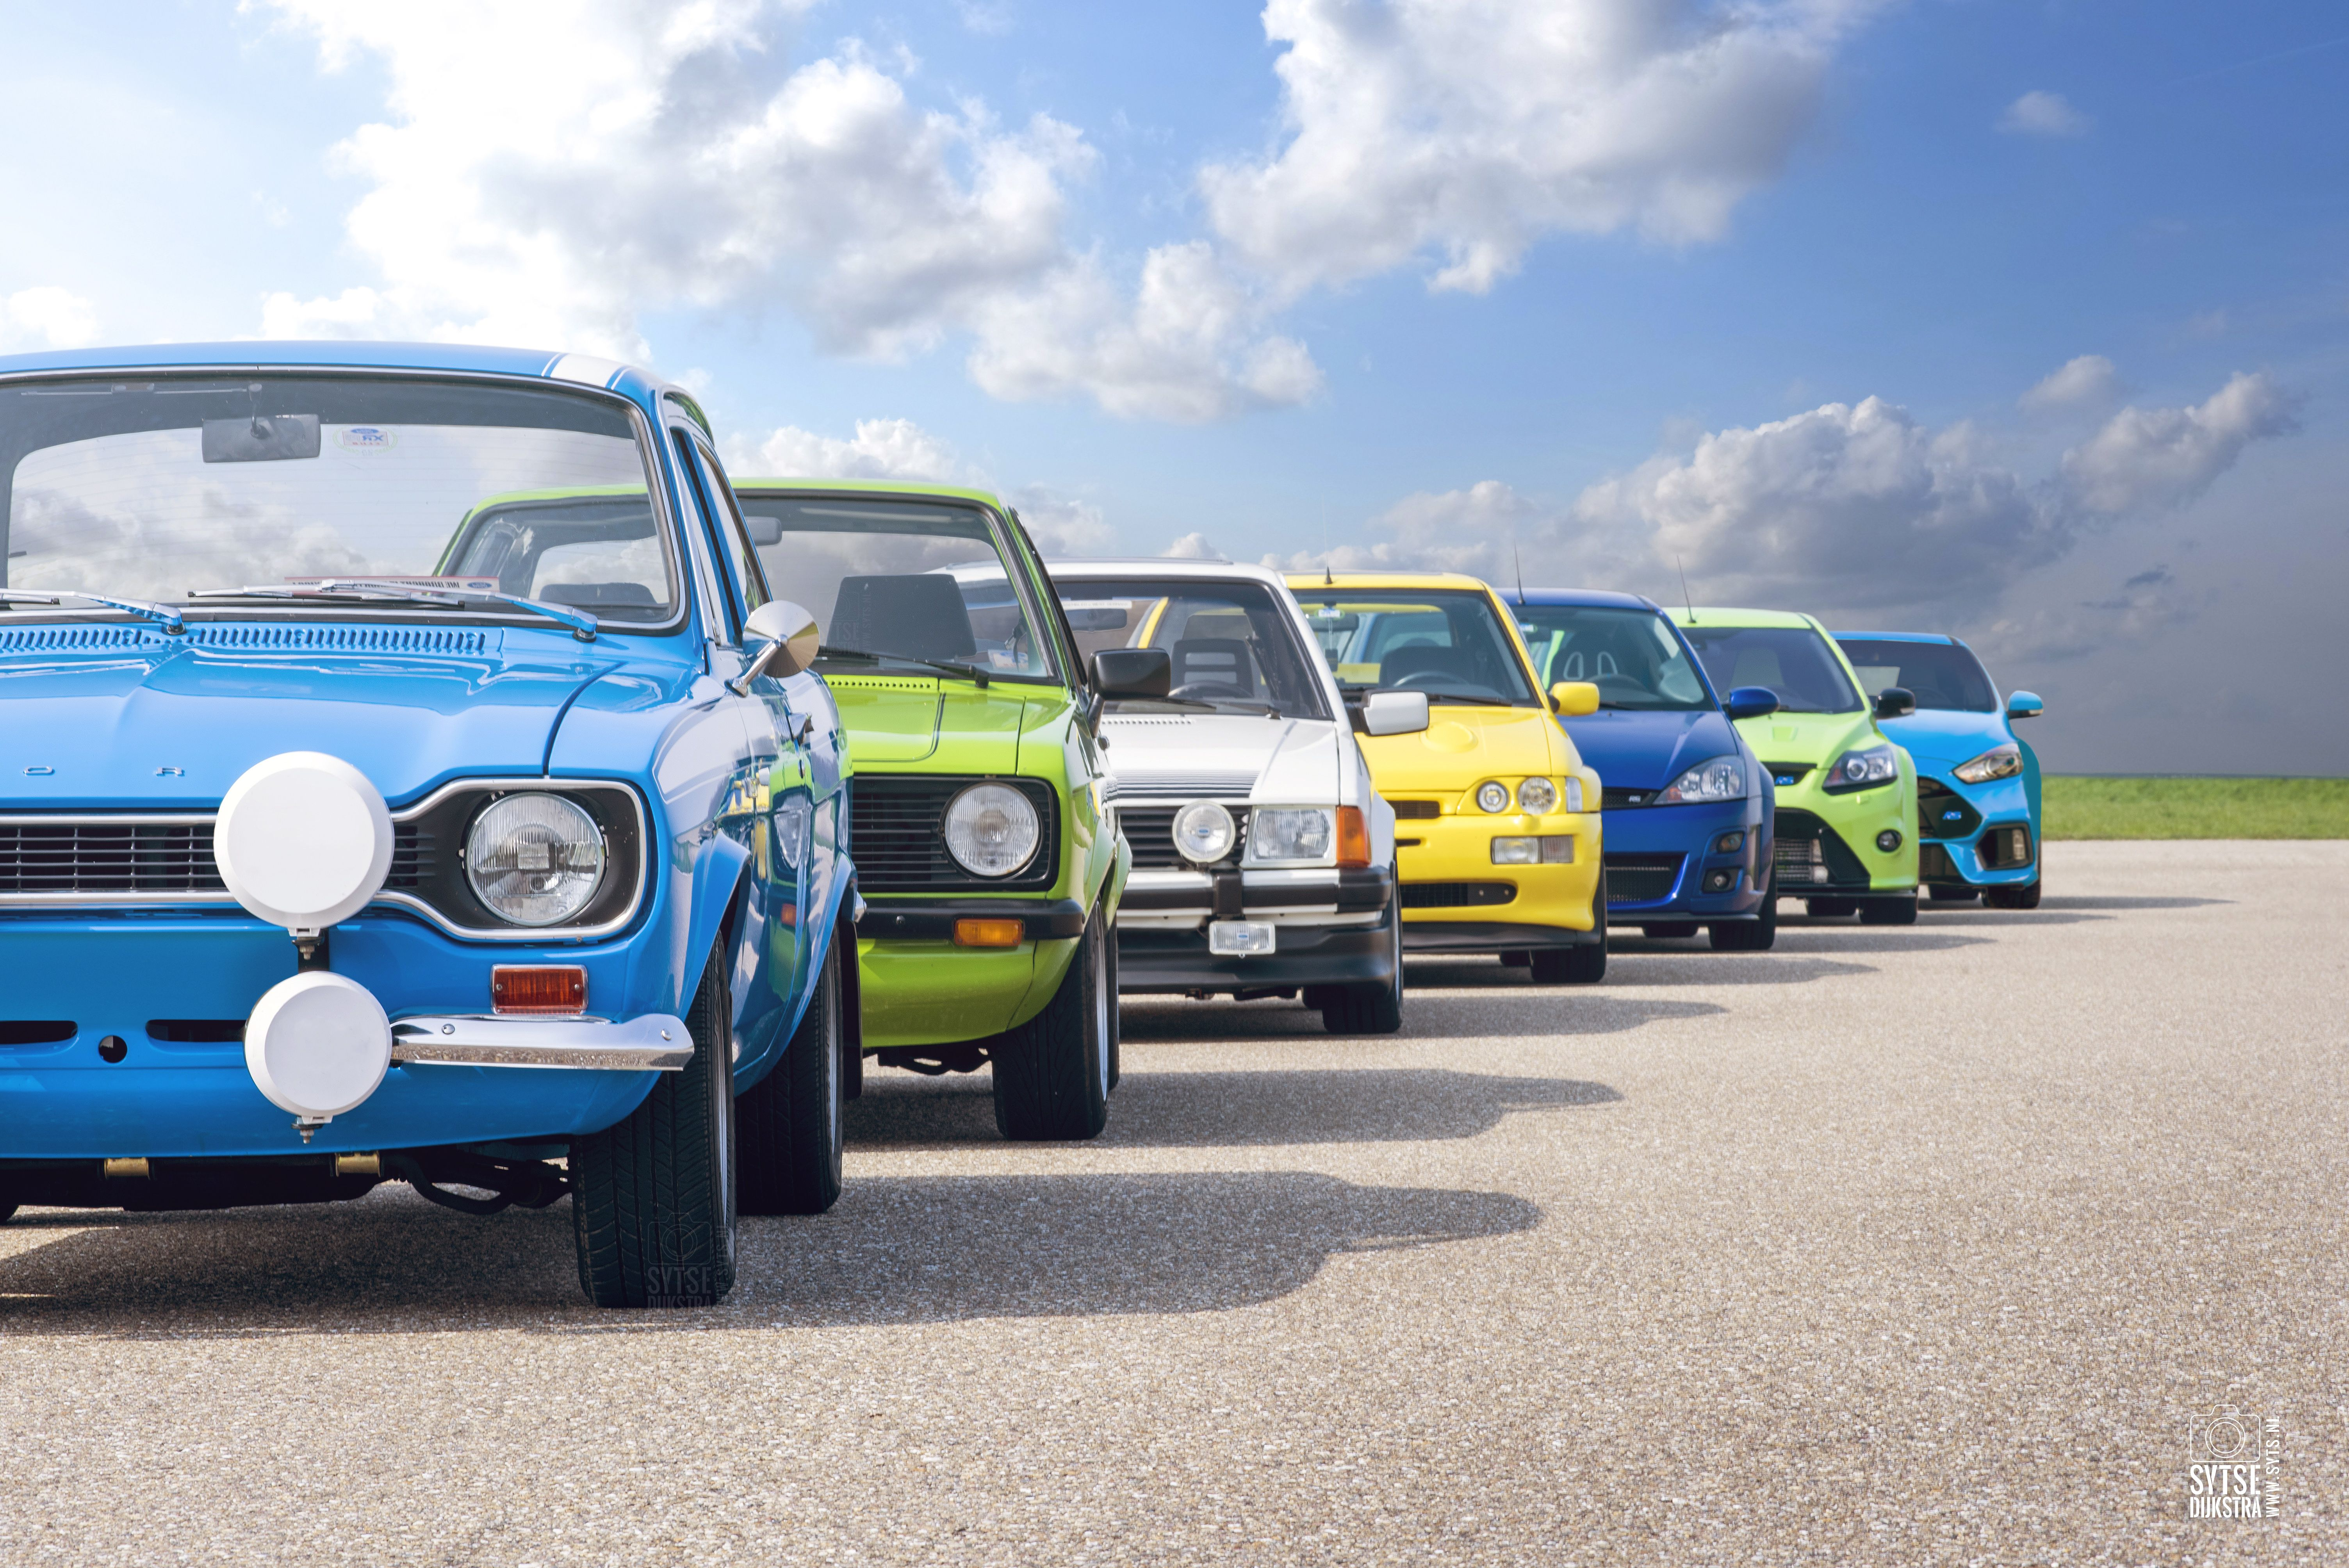 6016x4016 - Ford Escort Wallpapers 3